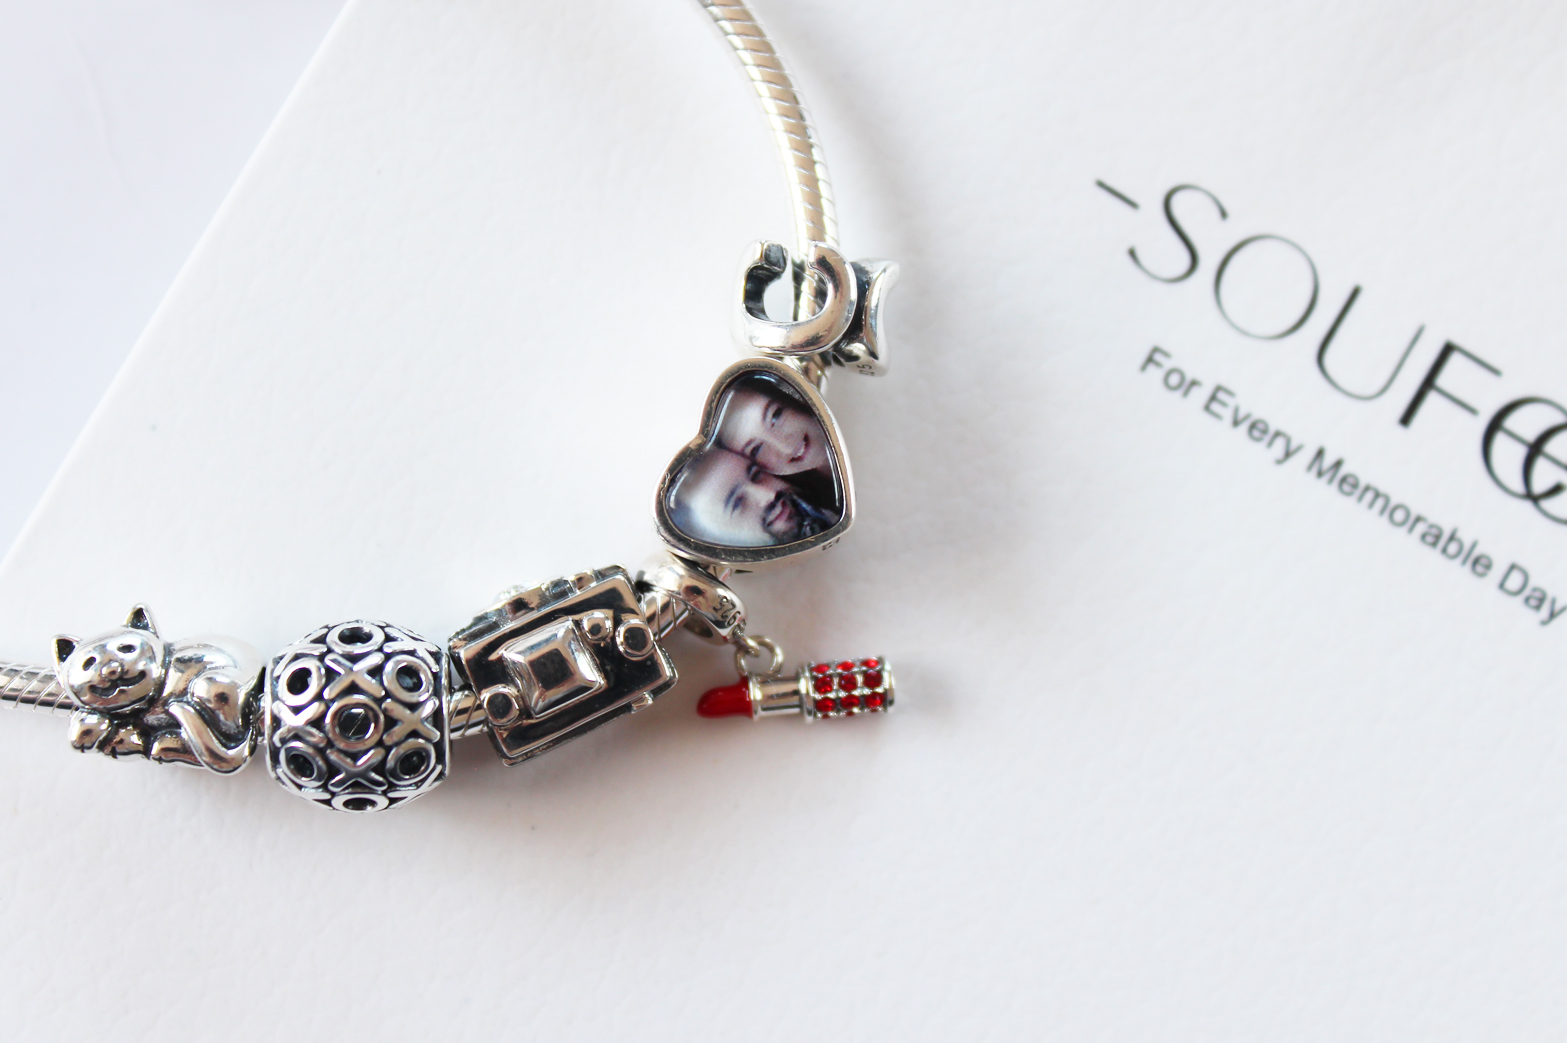 SOUFEEL | Charms + Bracelets - Review - CassandraMyee